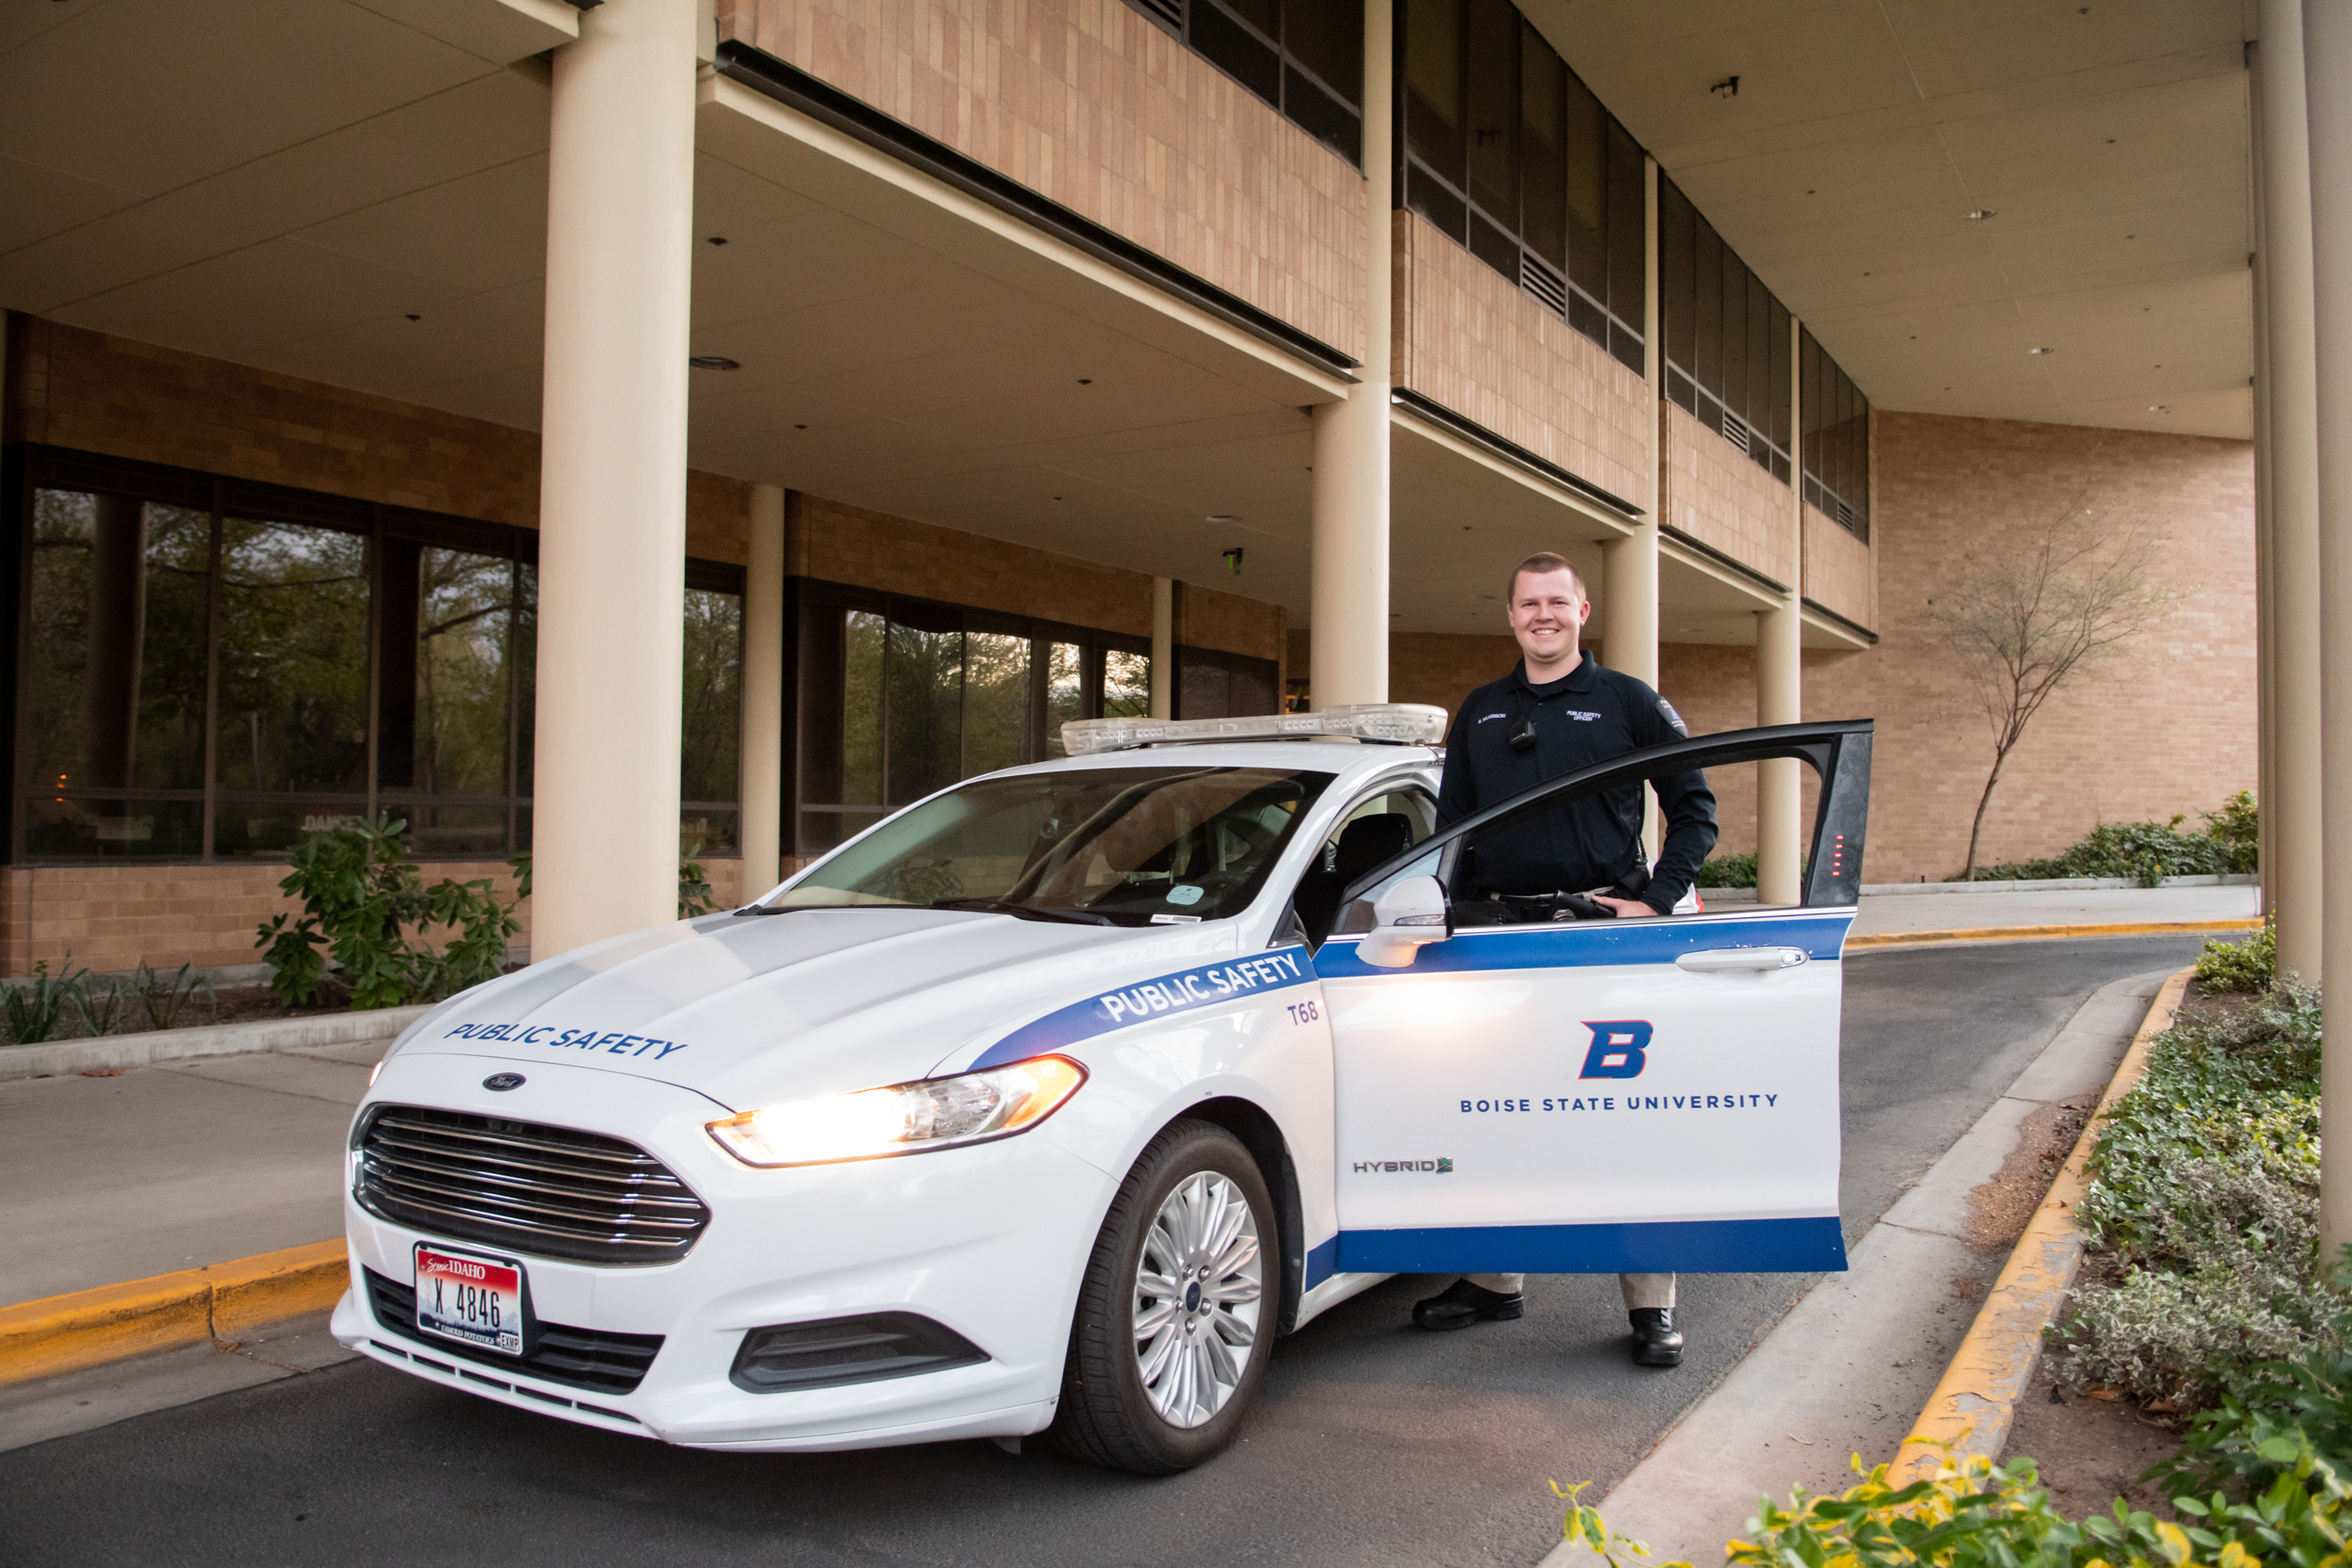 Brent Wilkinson is a public safety officer and a Boise State student majoring in psychology, with a minor in criminal justice. Photo, Patrick Sweeney.